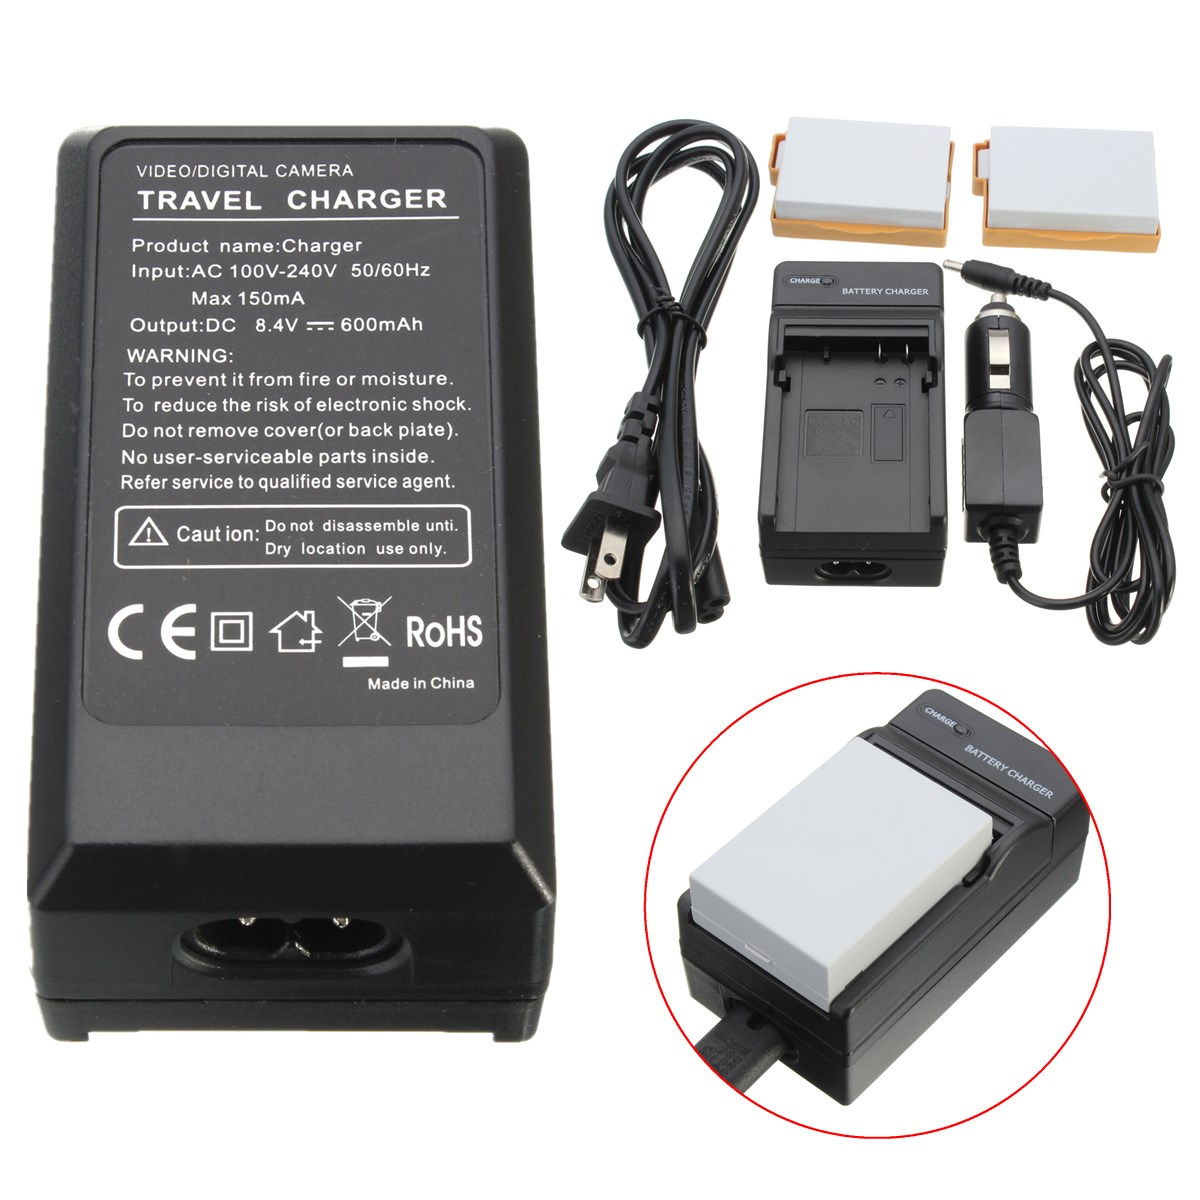 2x safe li ion battery 2 charger car for canon lpe8 lp e8. Black Bedroom Furniture Sets. Home Design Ideas